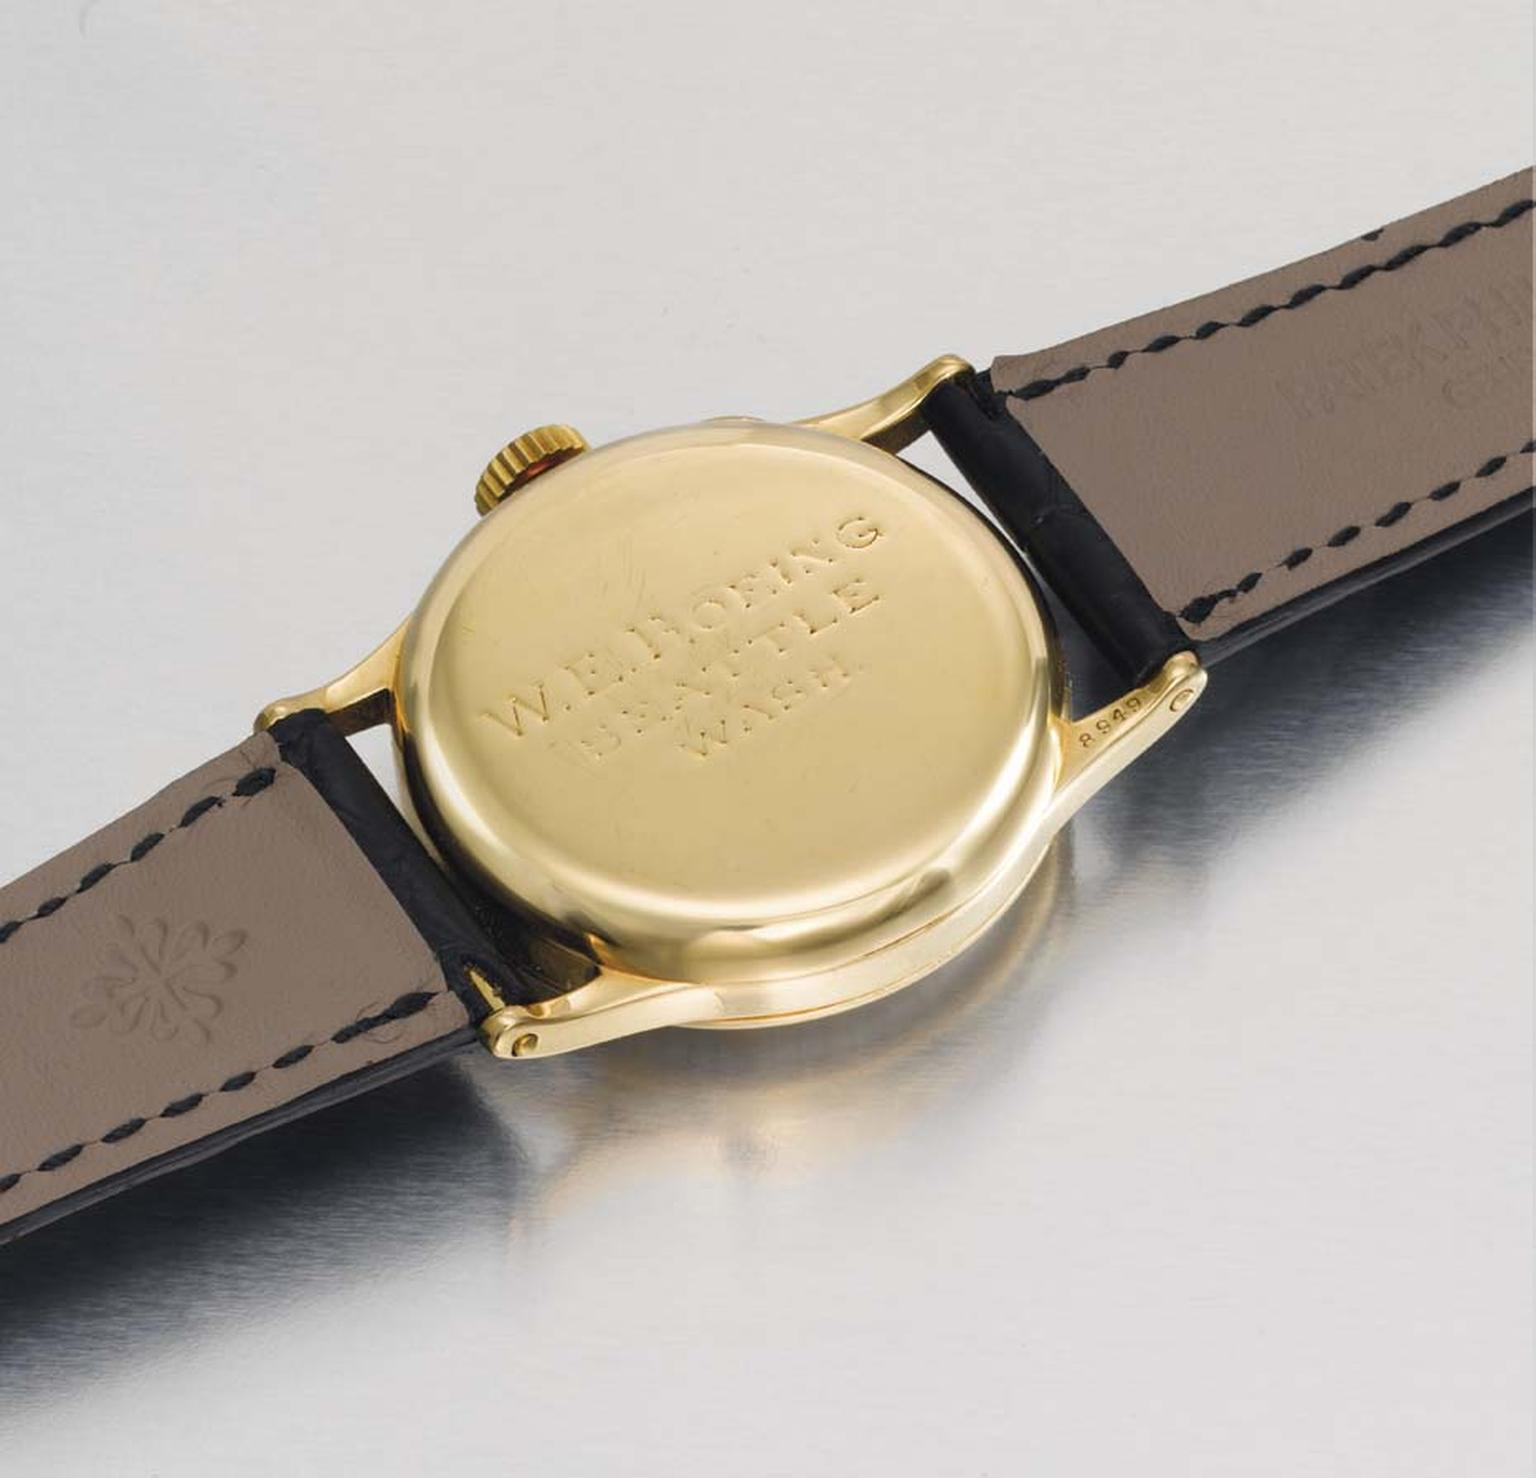 The initials of Mr William E. Boeing of Seattle, Washington, are inscribed on the back of the rare Patek Philippe Reference 130 wristwatch, which sold for $494,000 at Christie's Patek Philippe 175th Anniversary sale on 9 November 2014.